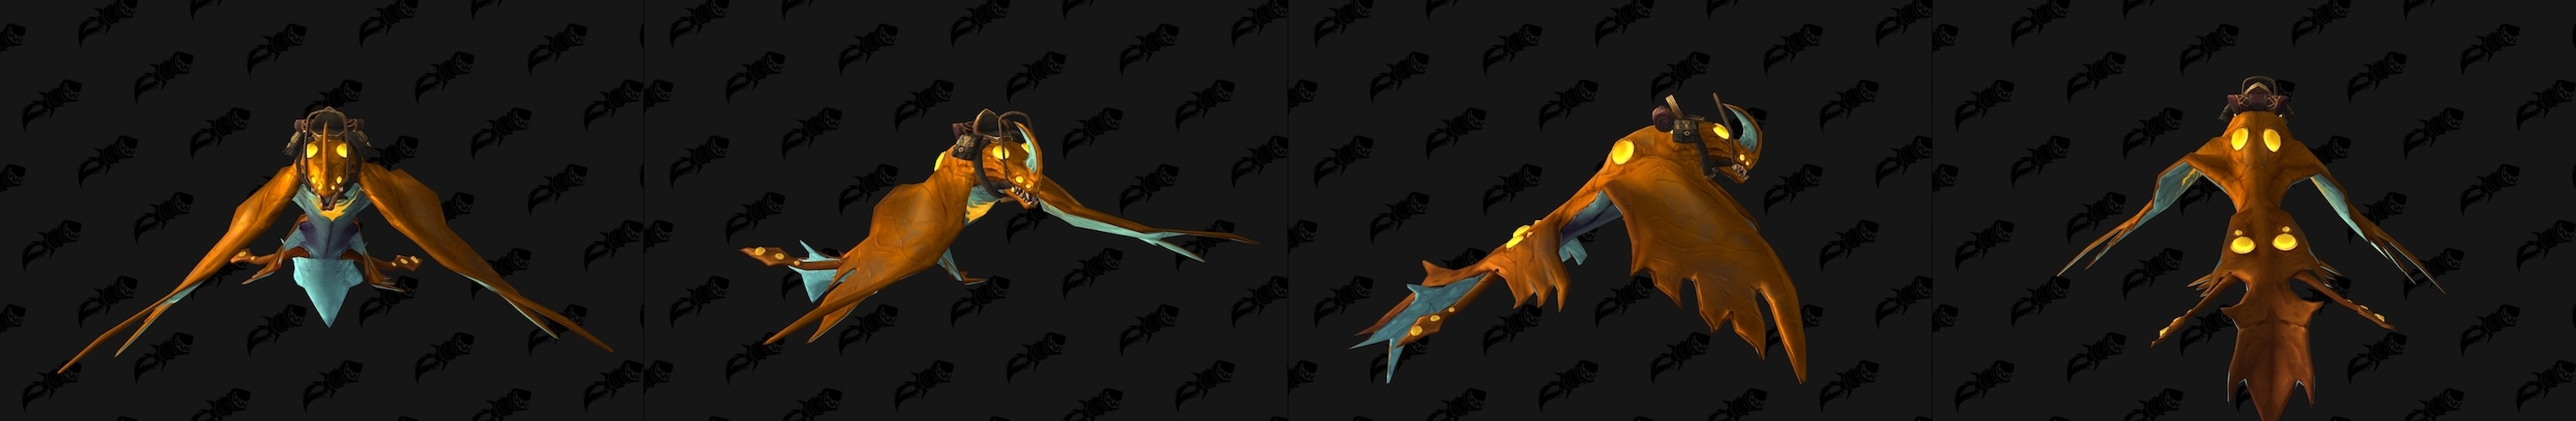 All The New Mounts In Patch 73 Elekks Ruinstriders Mana Rays And